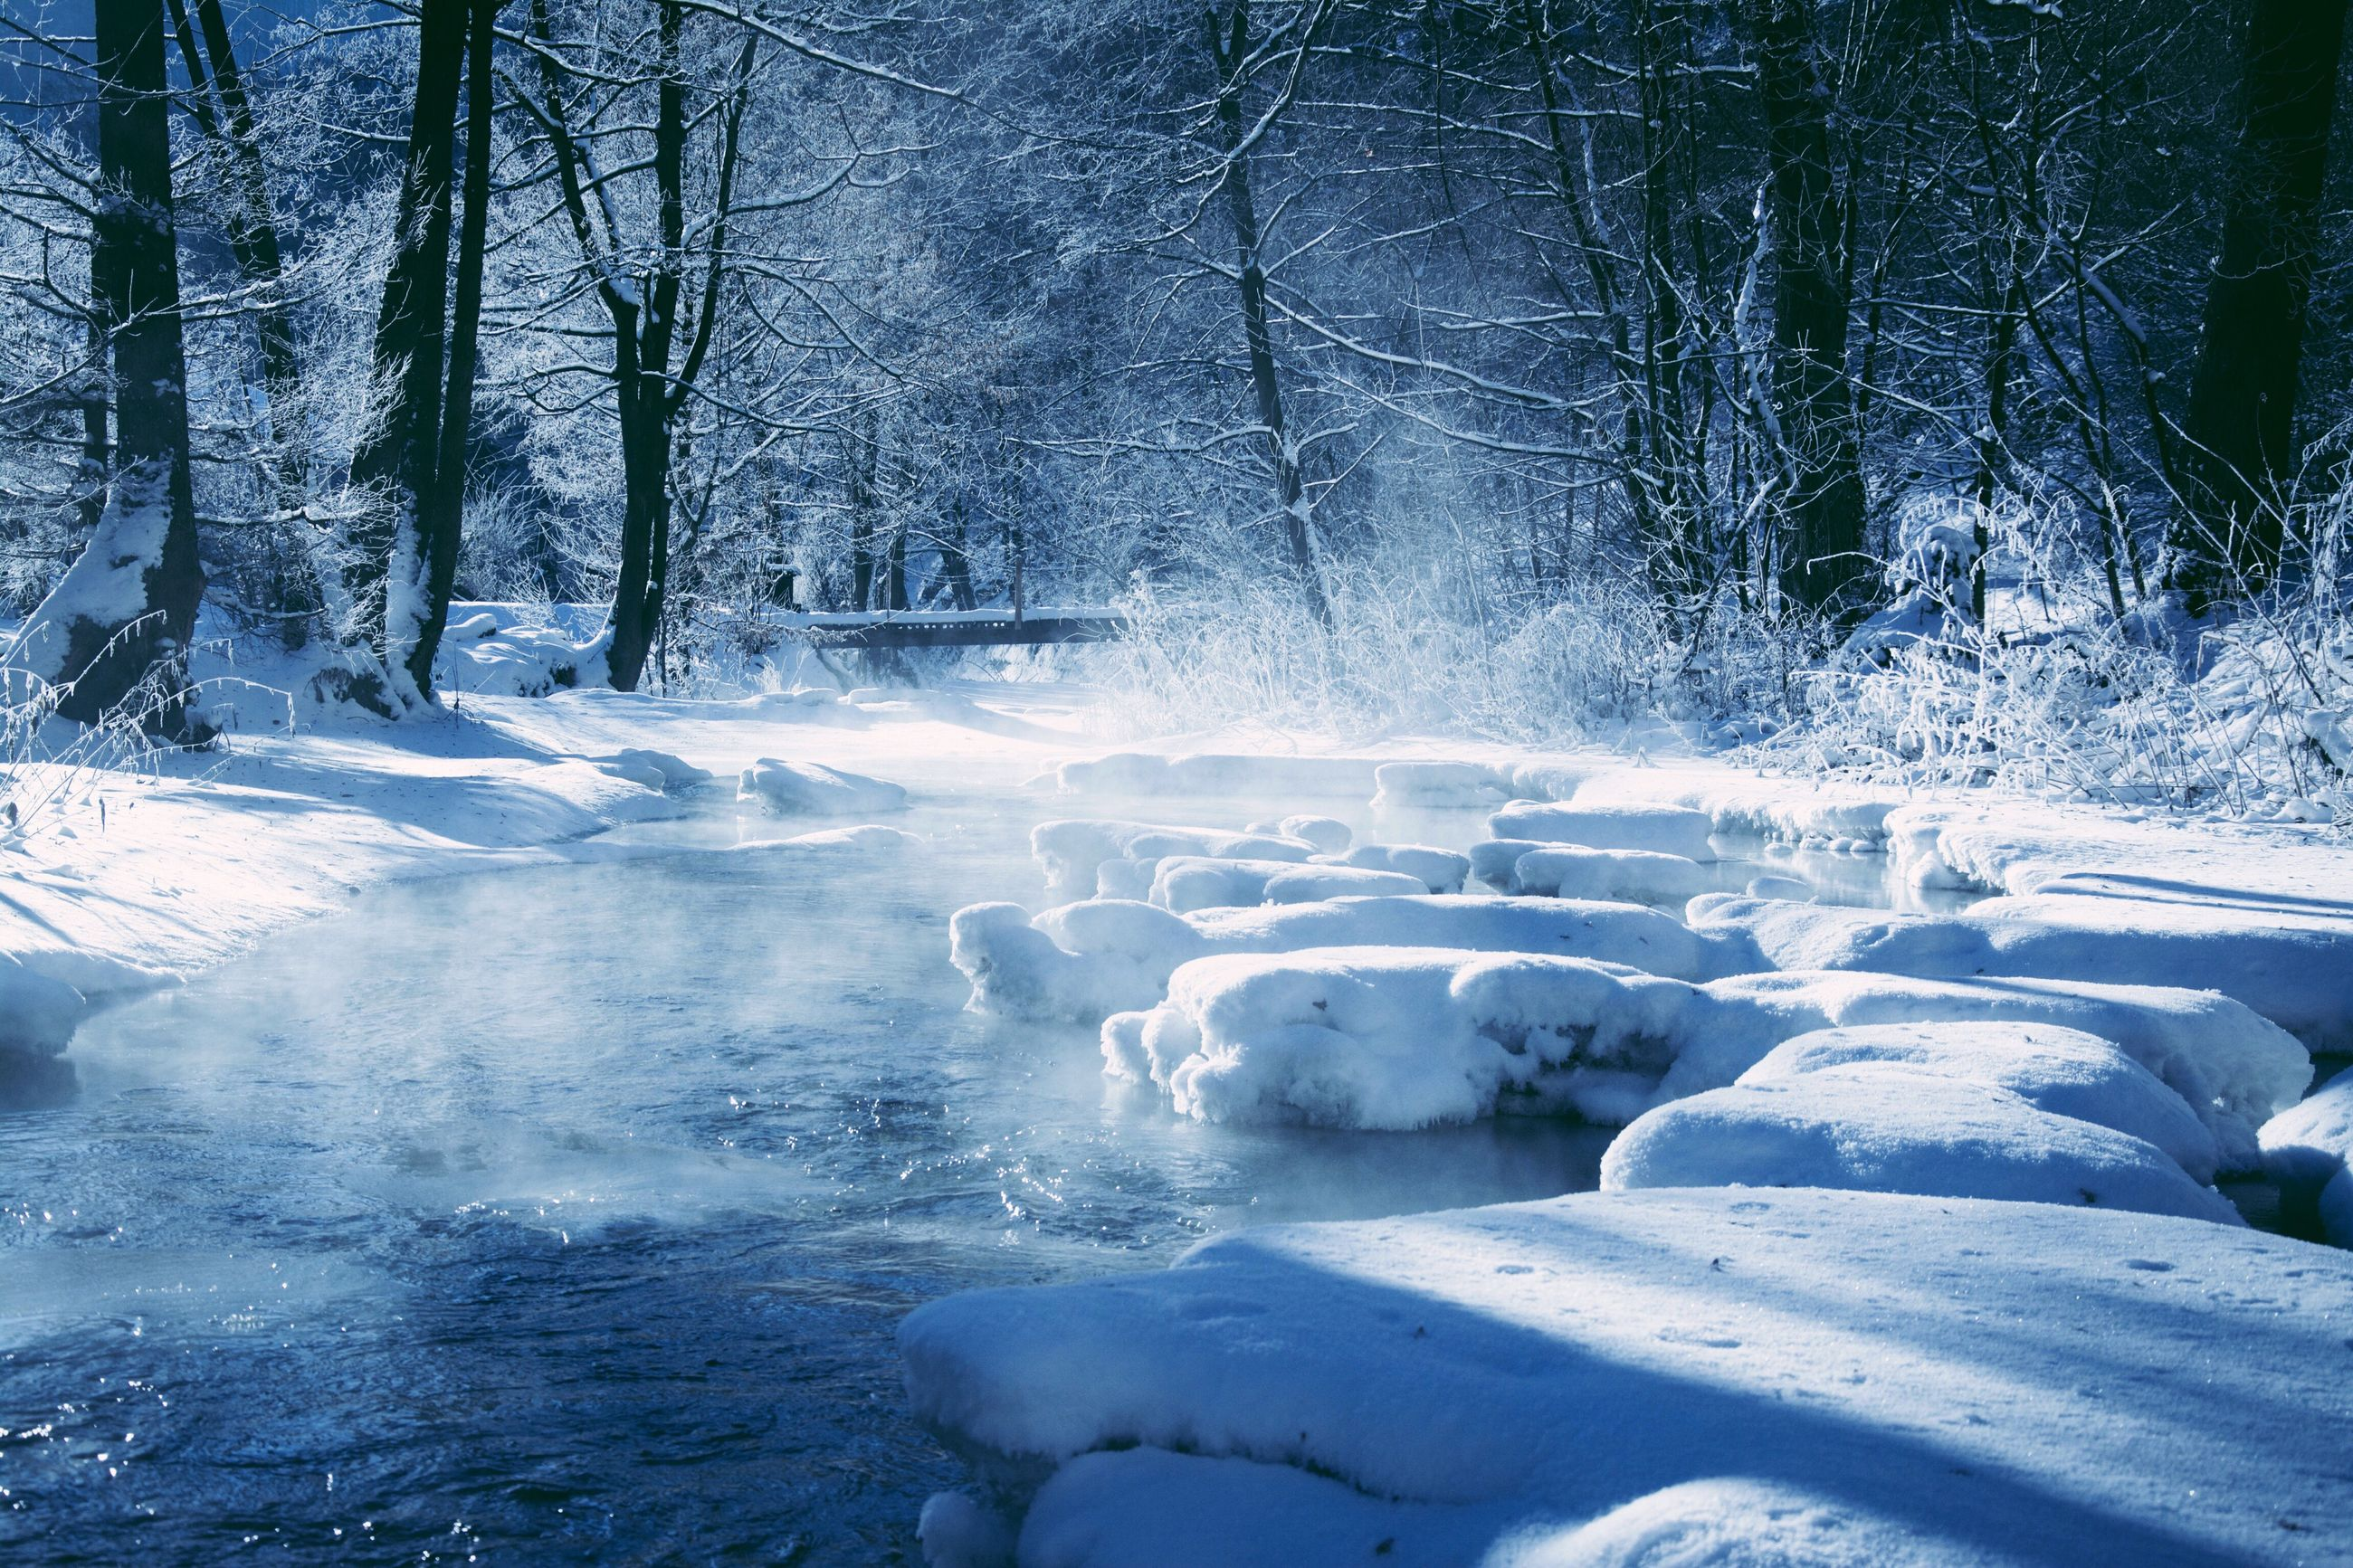 winter, snow, cold temperature, frozen, nature, beauty in nature, ice, tree, frost, tranquility, no people, tranquil scene, scenics, polar climate, landscape, day, cold, outdoors, frozen lake